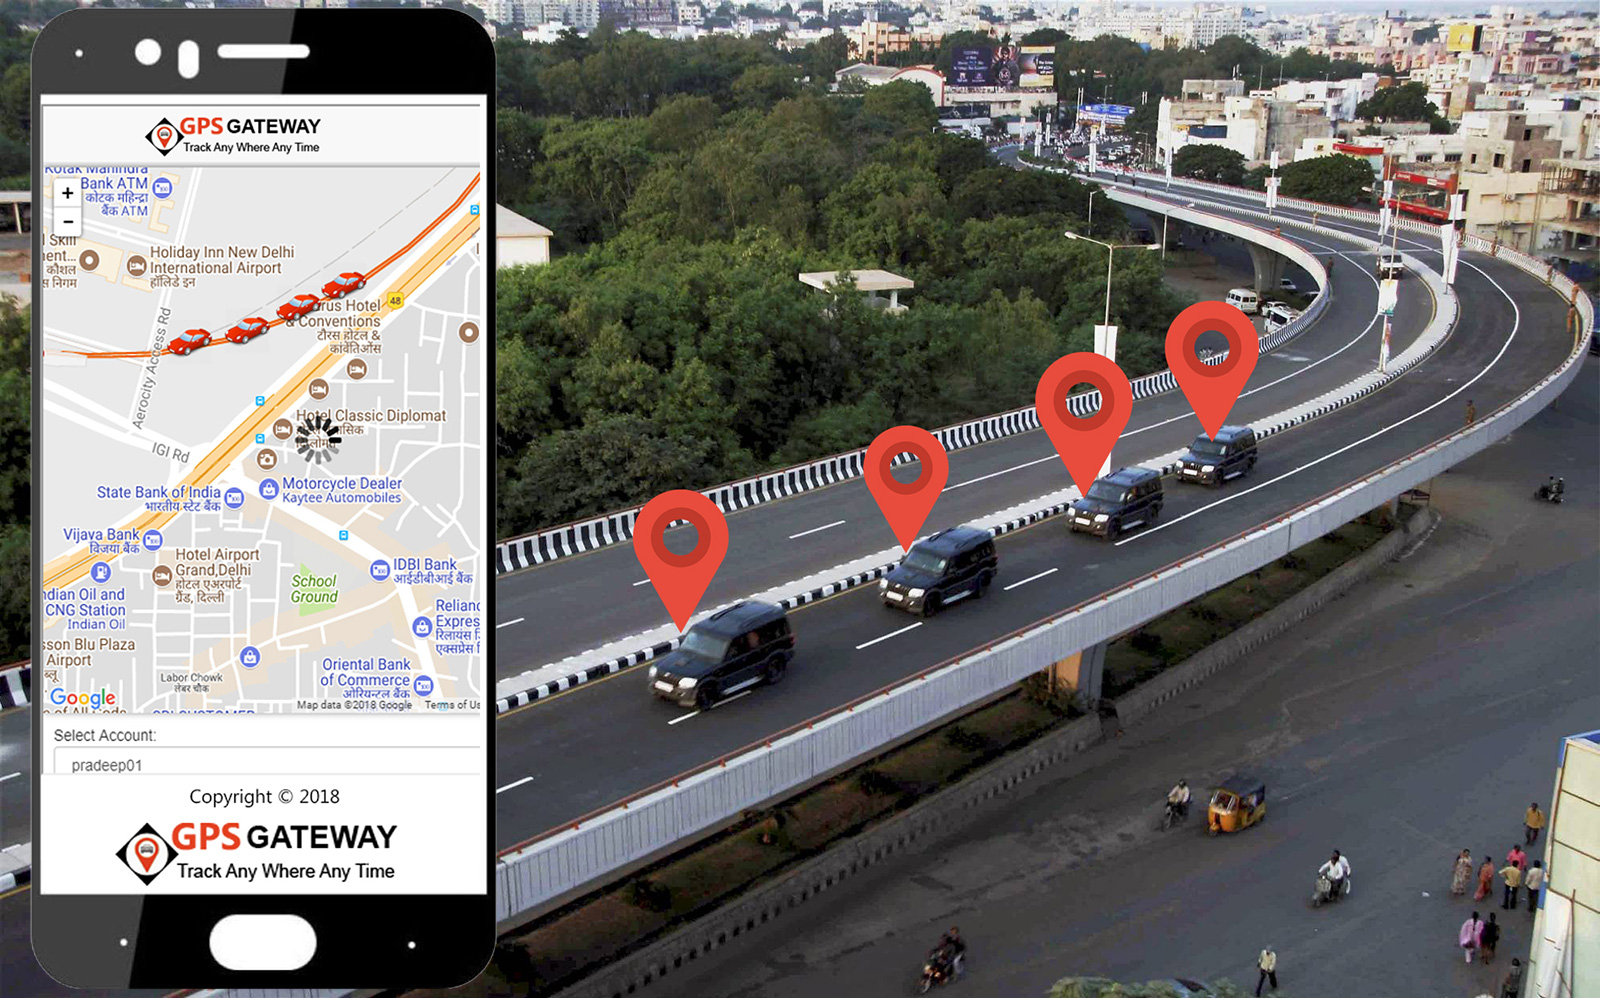 gps vehicle tracking system in agra , gps tracking device in lucknow,  car tracking device in Agra, GPS Tracking company agra